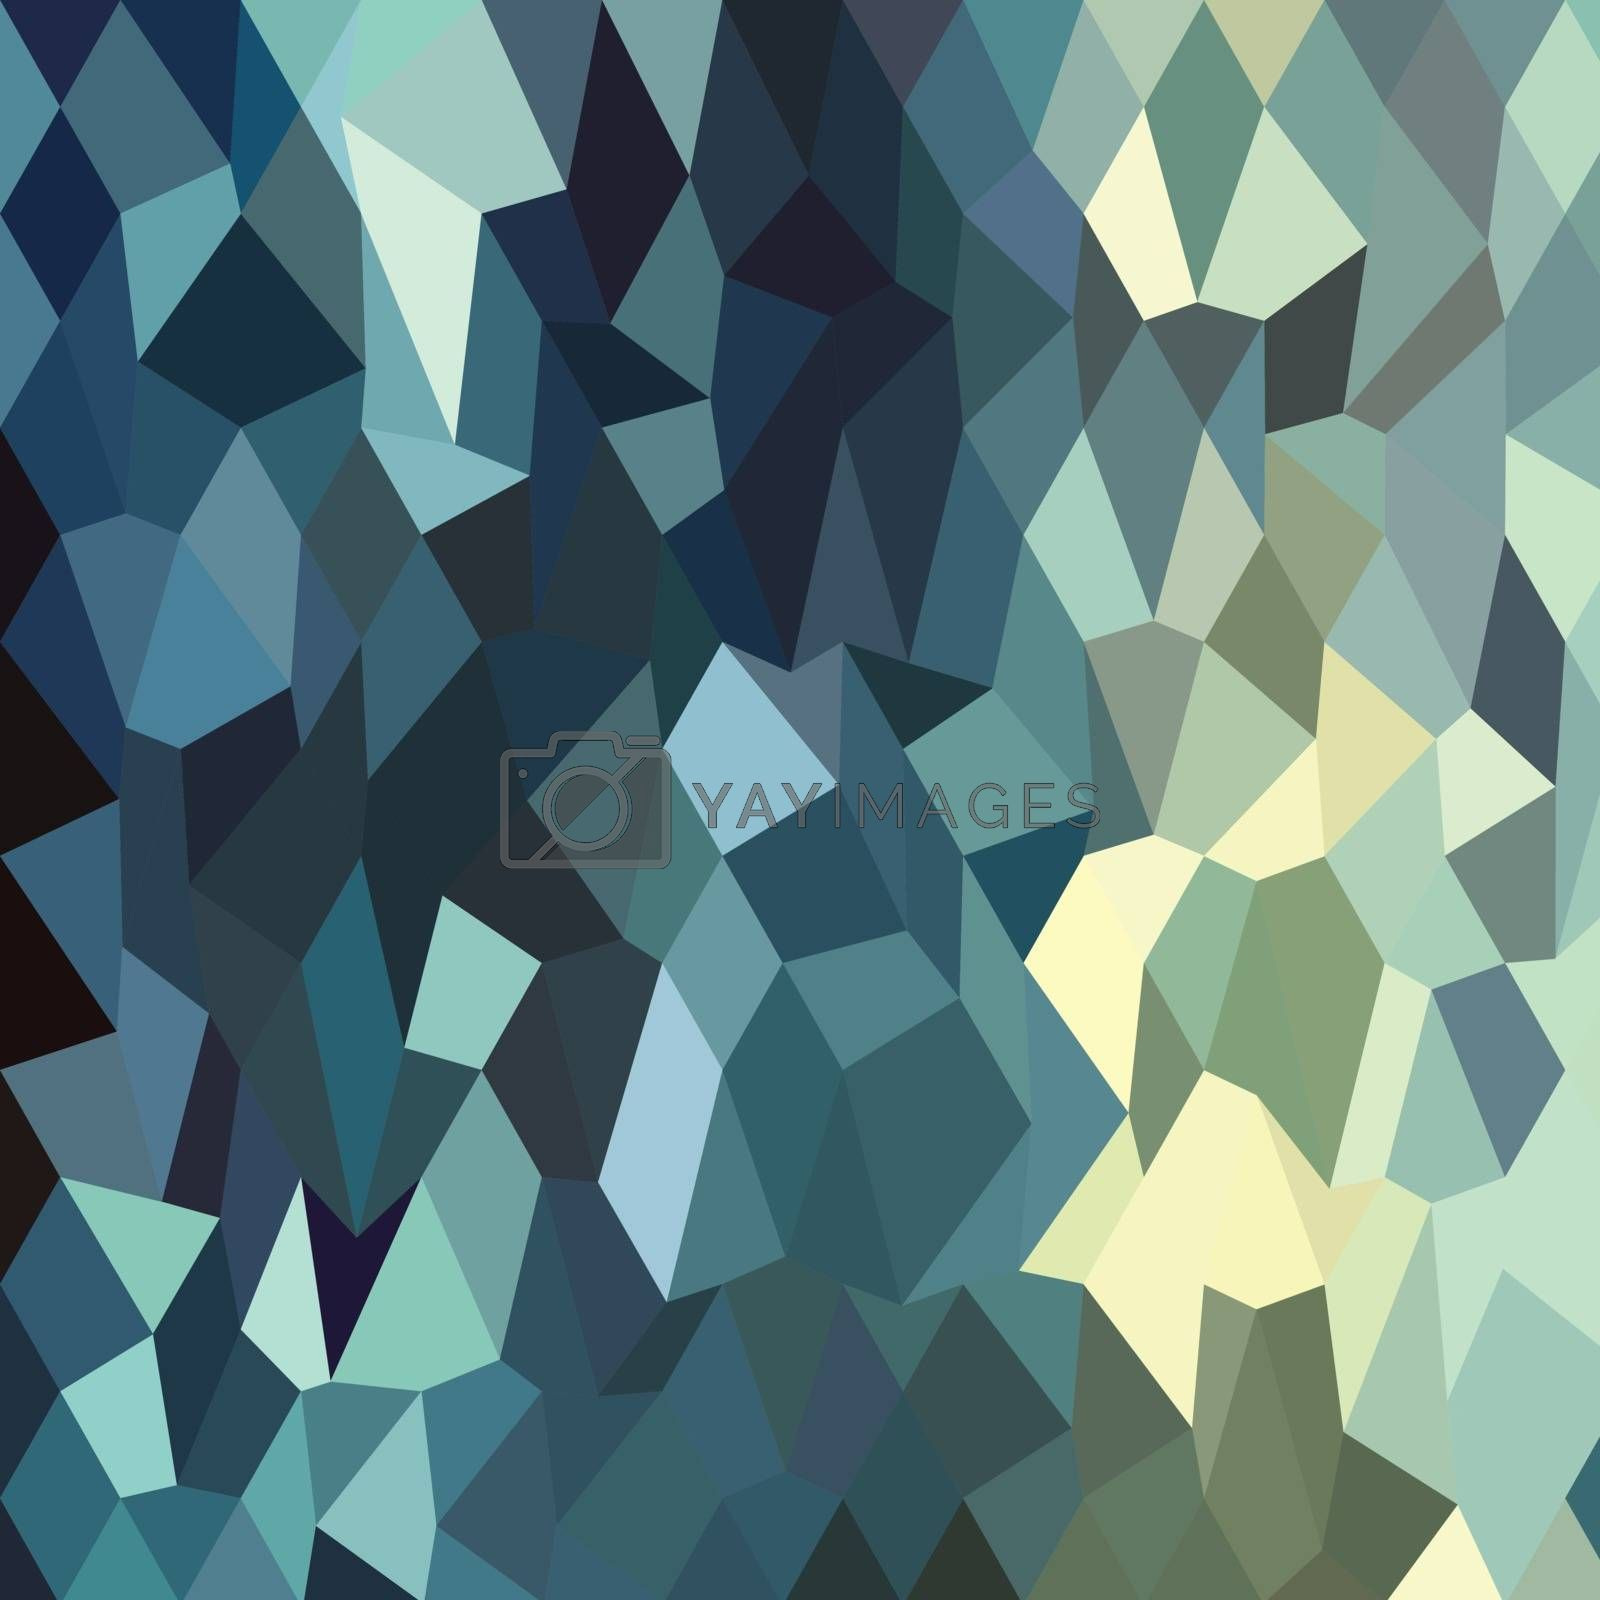 Low polygon style illustration of a catalina blue abstract geometric background.